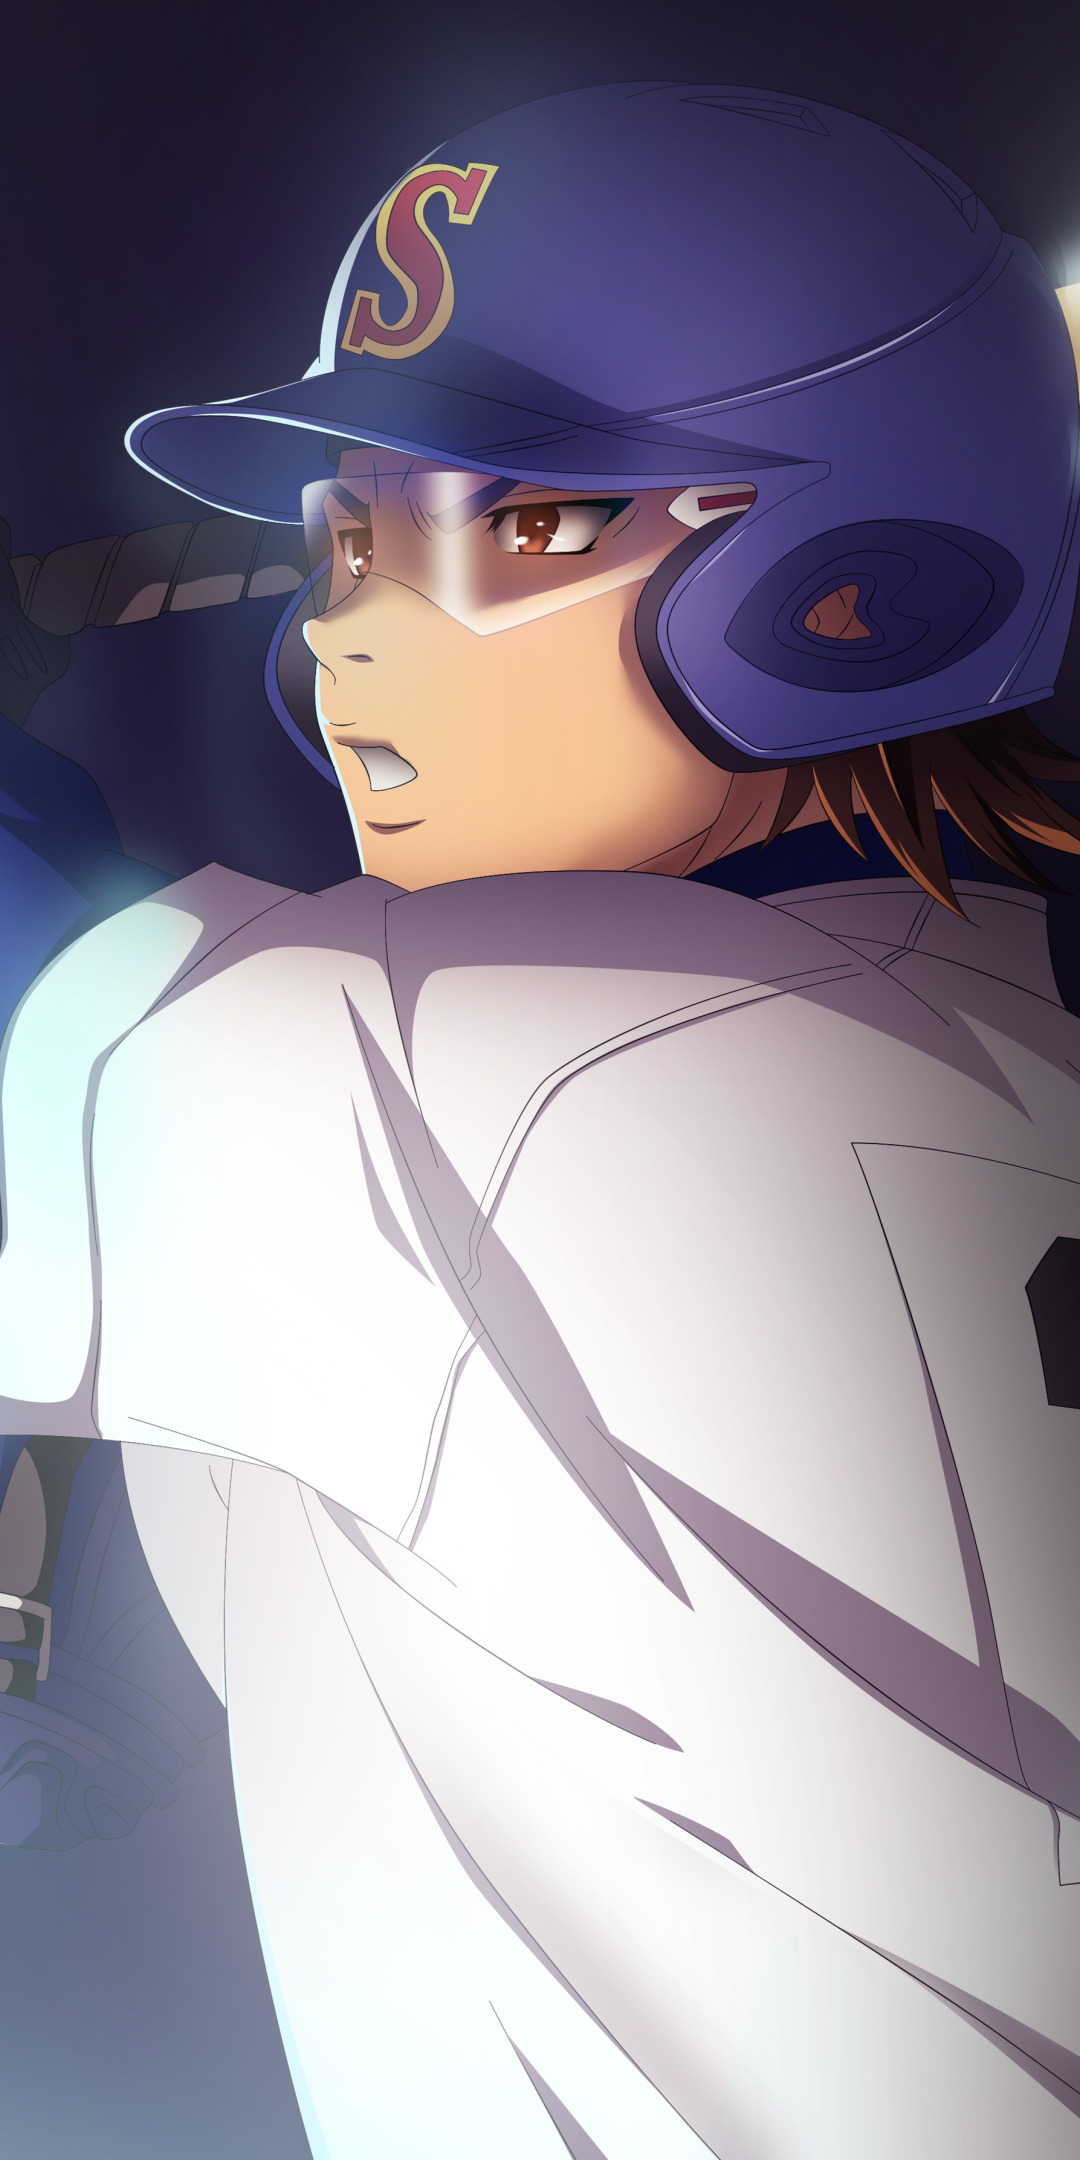 Anime Ace Of Diamond 1080x2160 Wallpaper Id 794596 Mobile Abyss